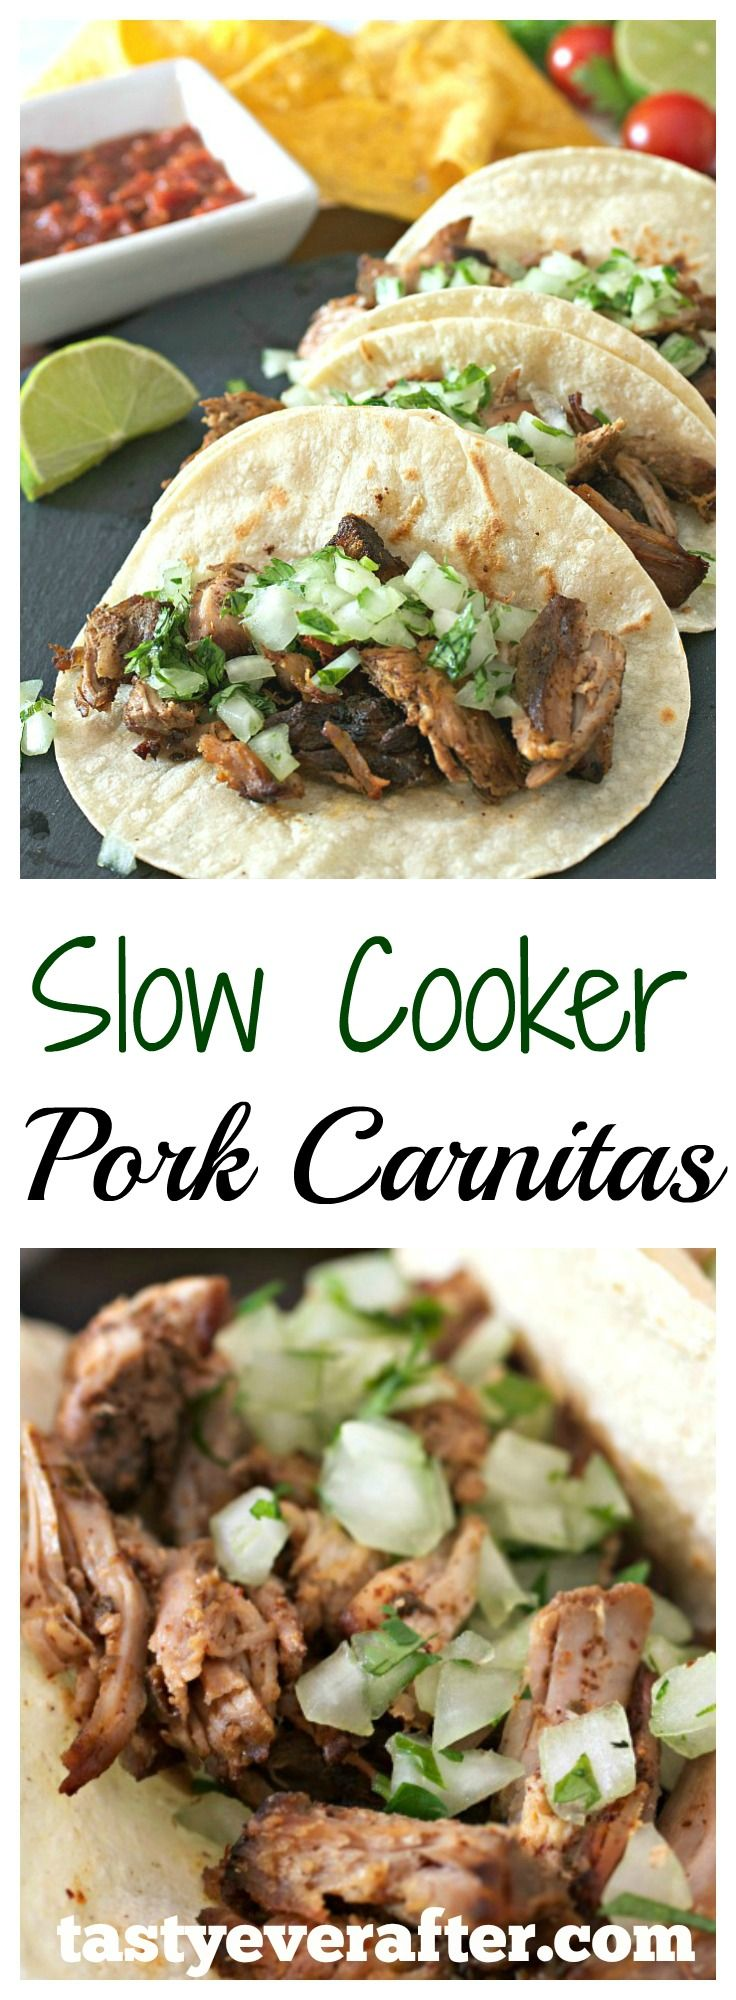 The EASIEST recipe for Slow Cooker Pork Carnitas ever!  Tender and flavorful pieces of crispy pork that just melt in your mouth.